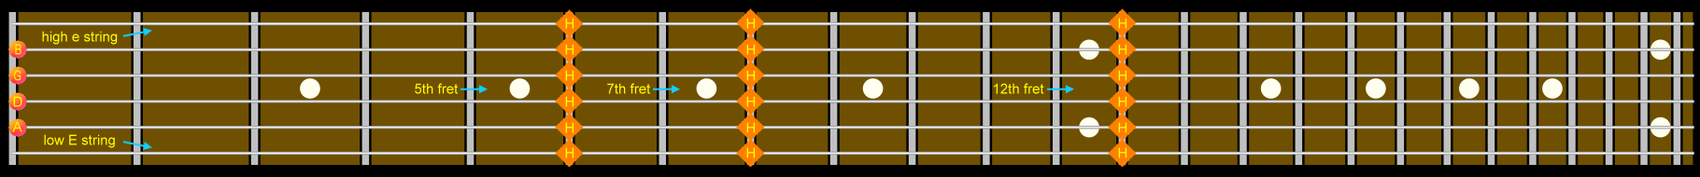 Guitar Natural Harmonics 5th-7th-12th Frets.png